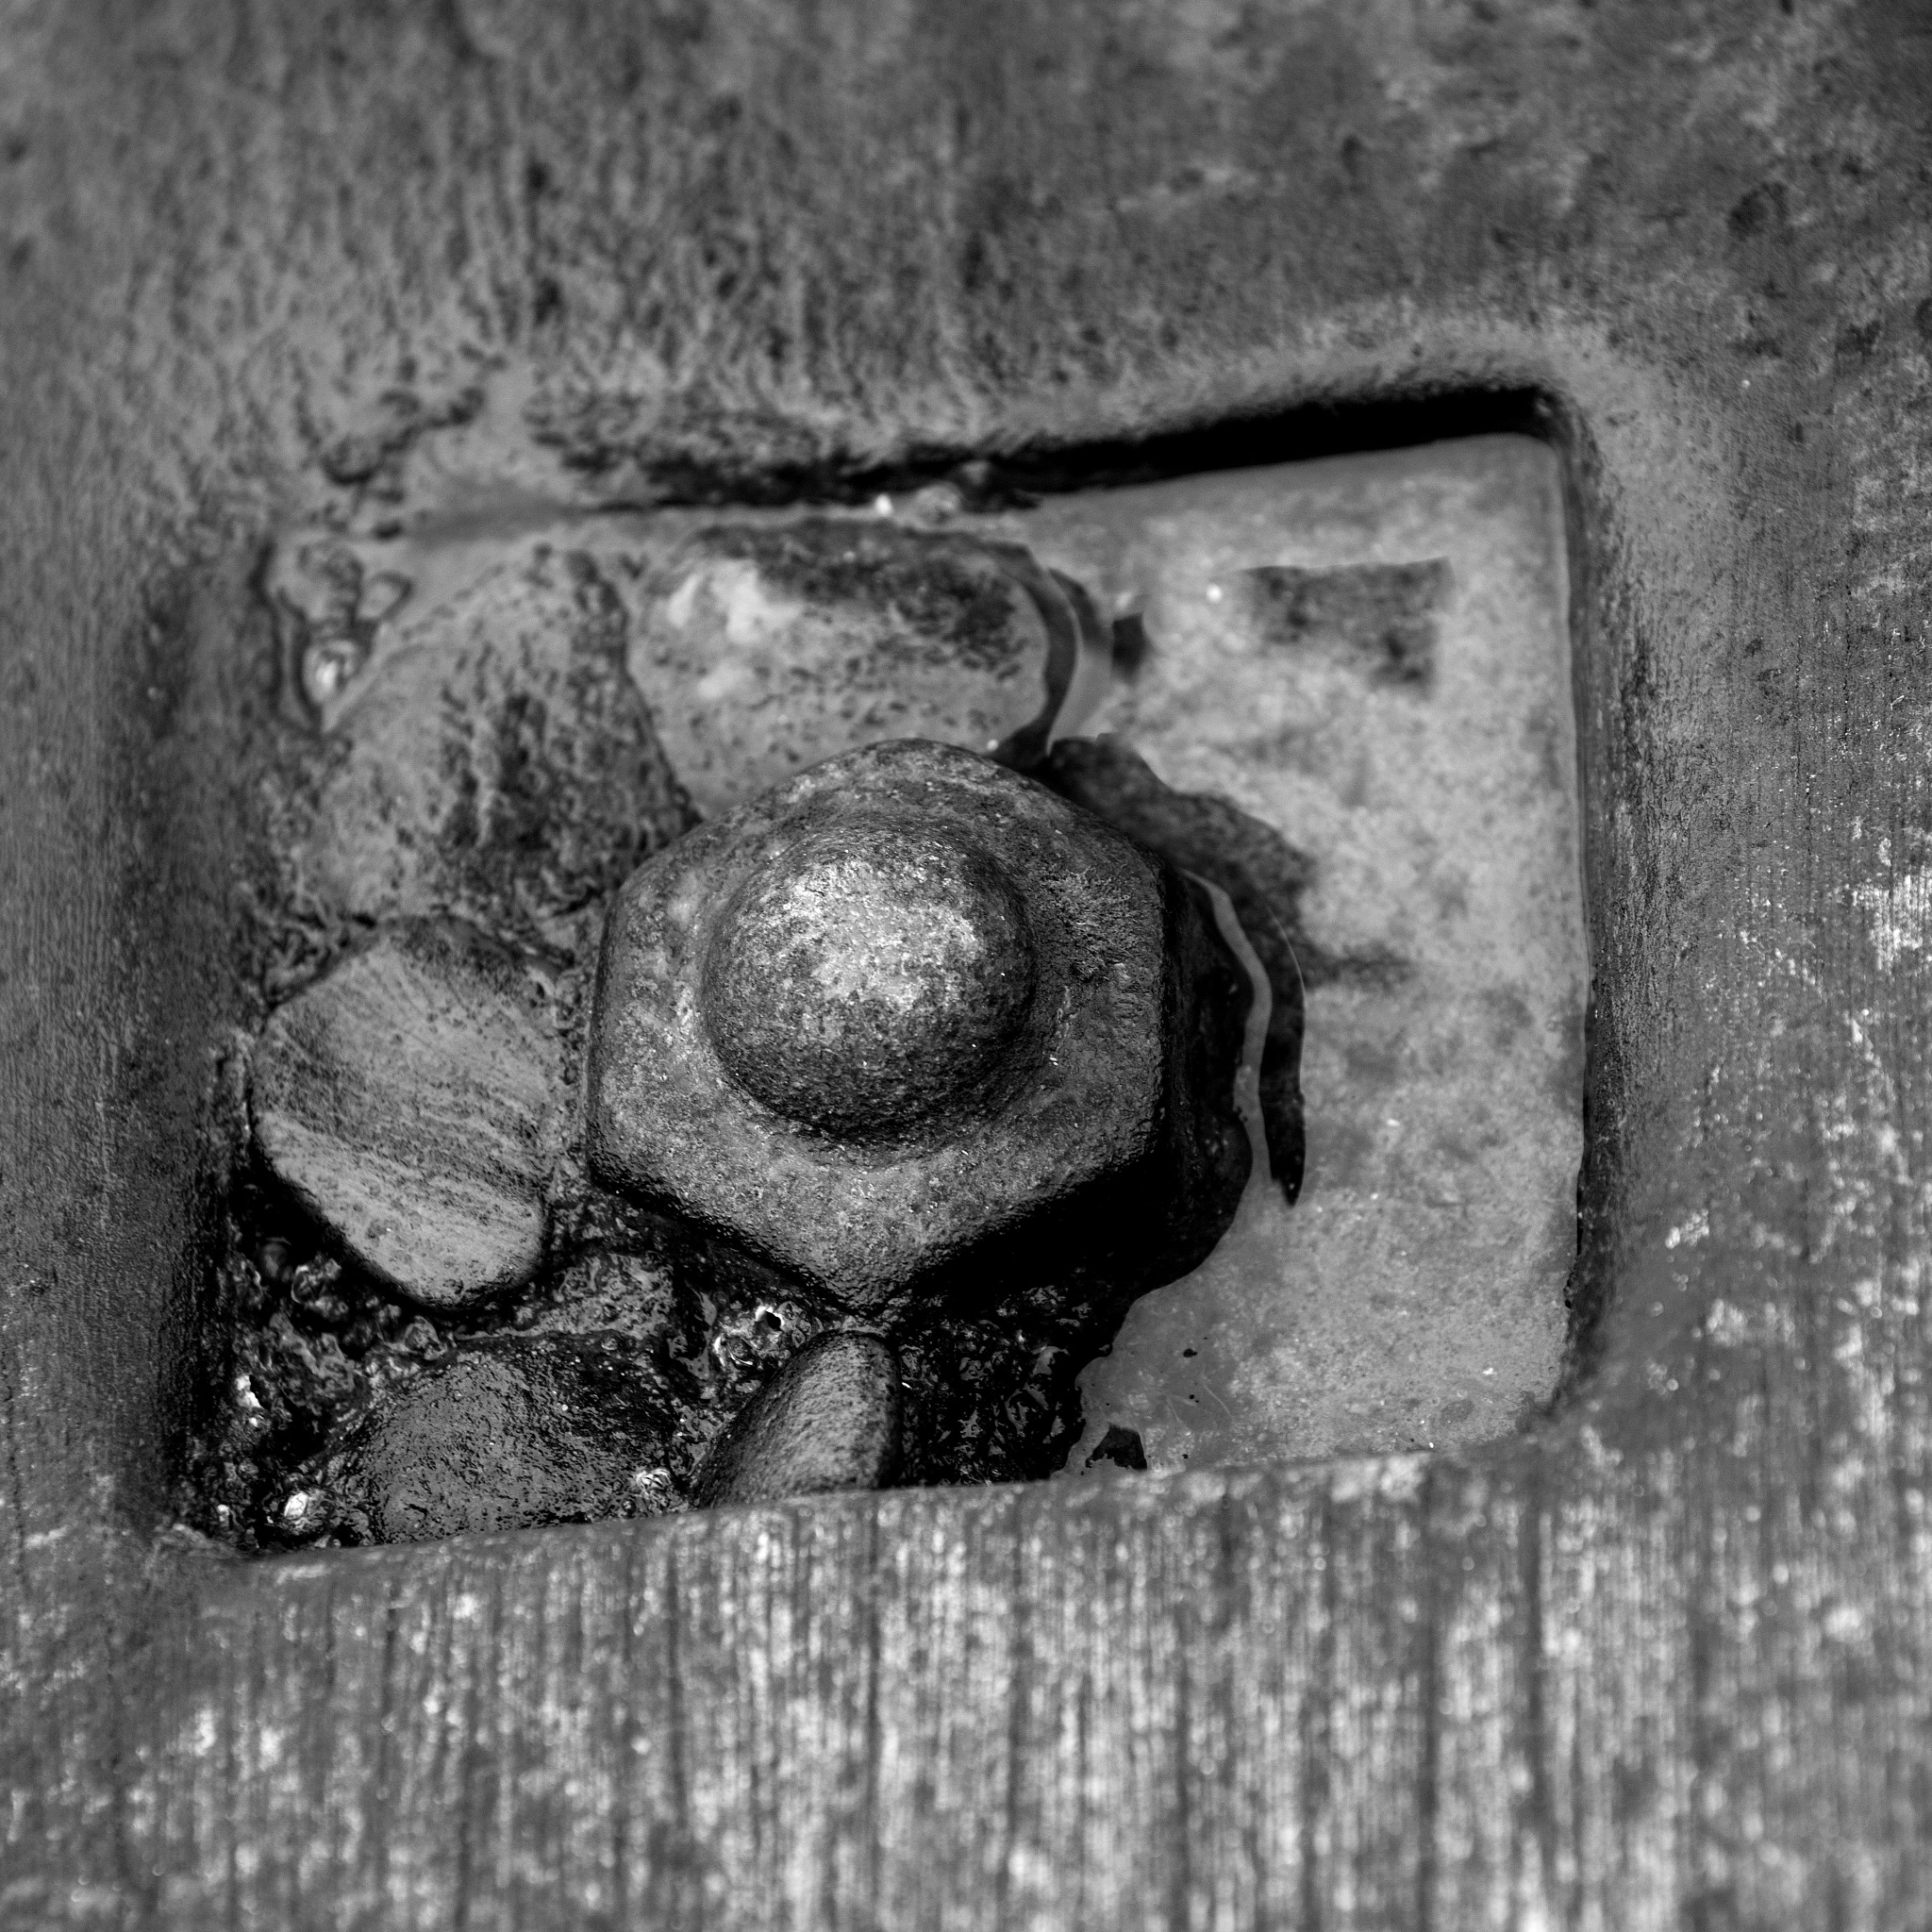 Rusty Bolt In Sea Breaker - Monochrome by paul.hosker